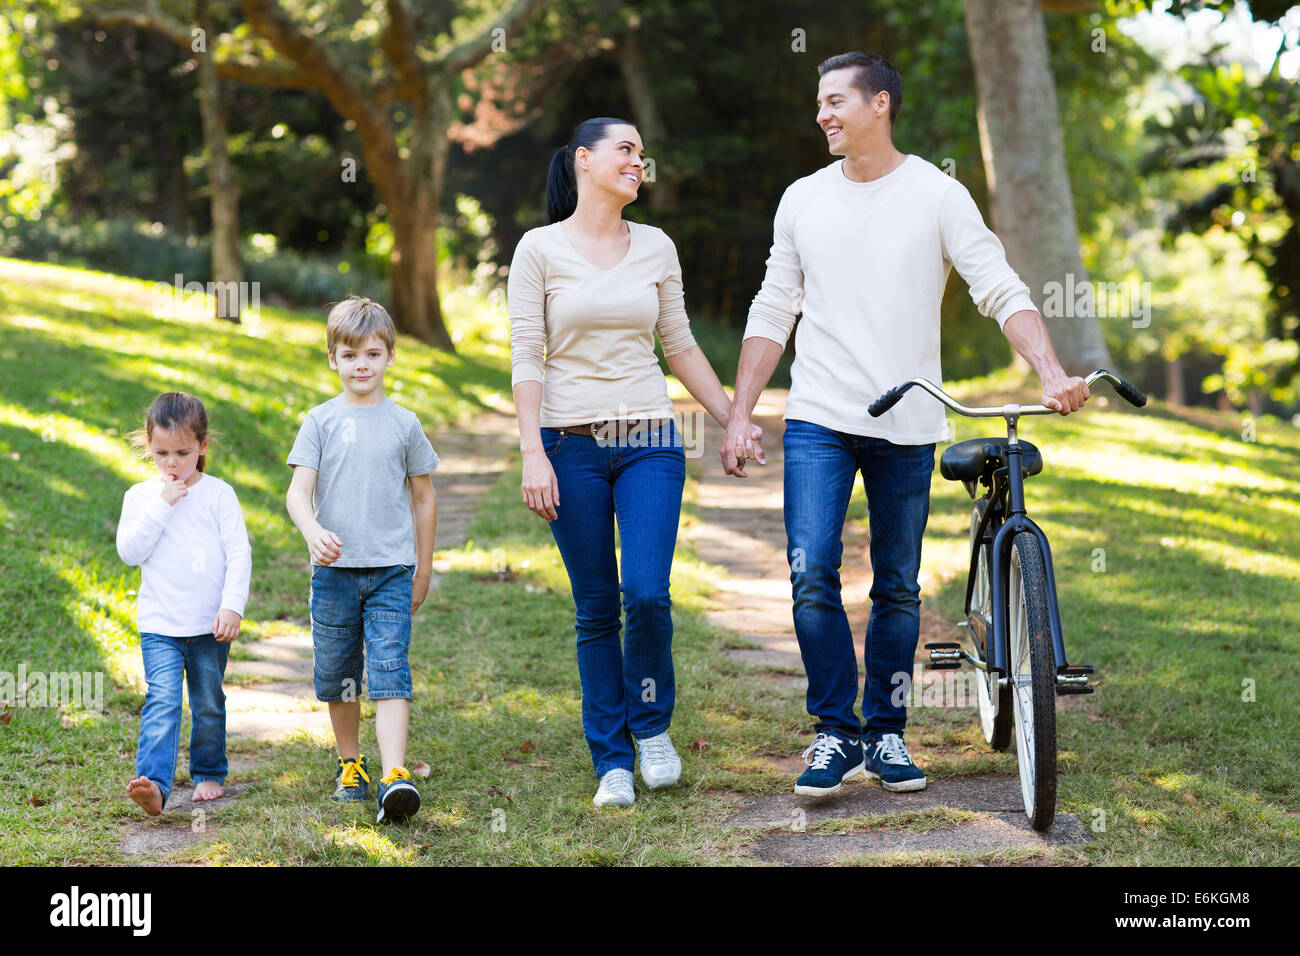 lovely young couple and kids walking outdoors in the park - Stock Image